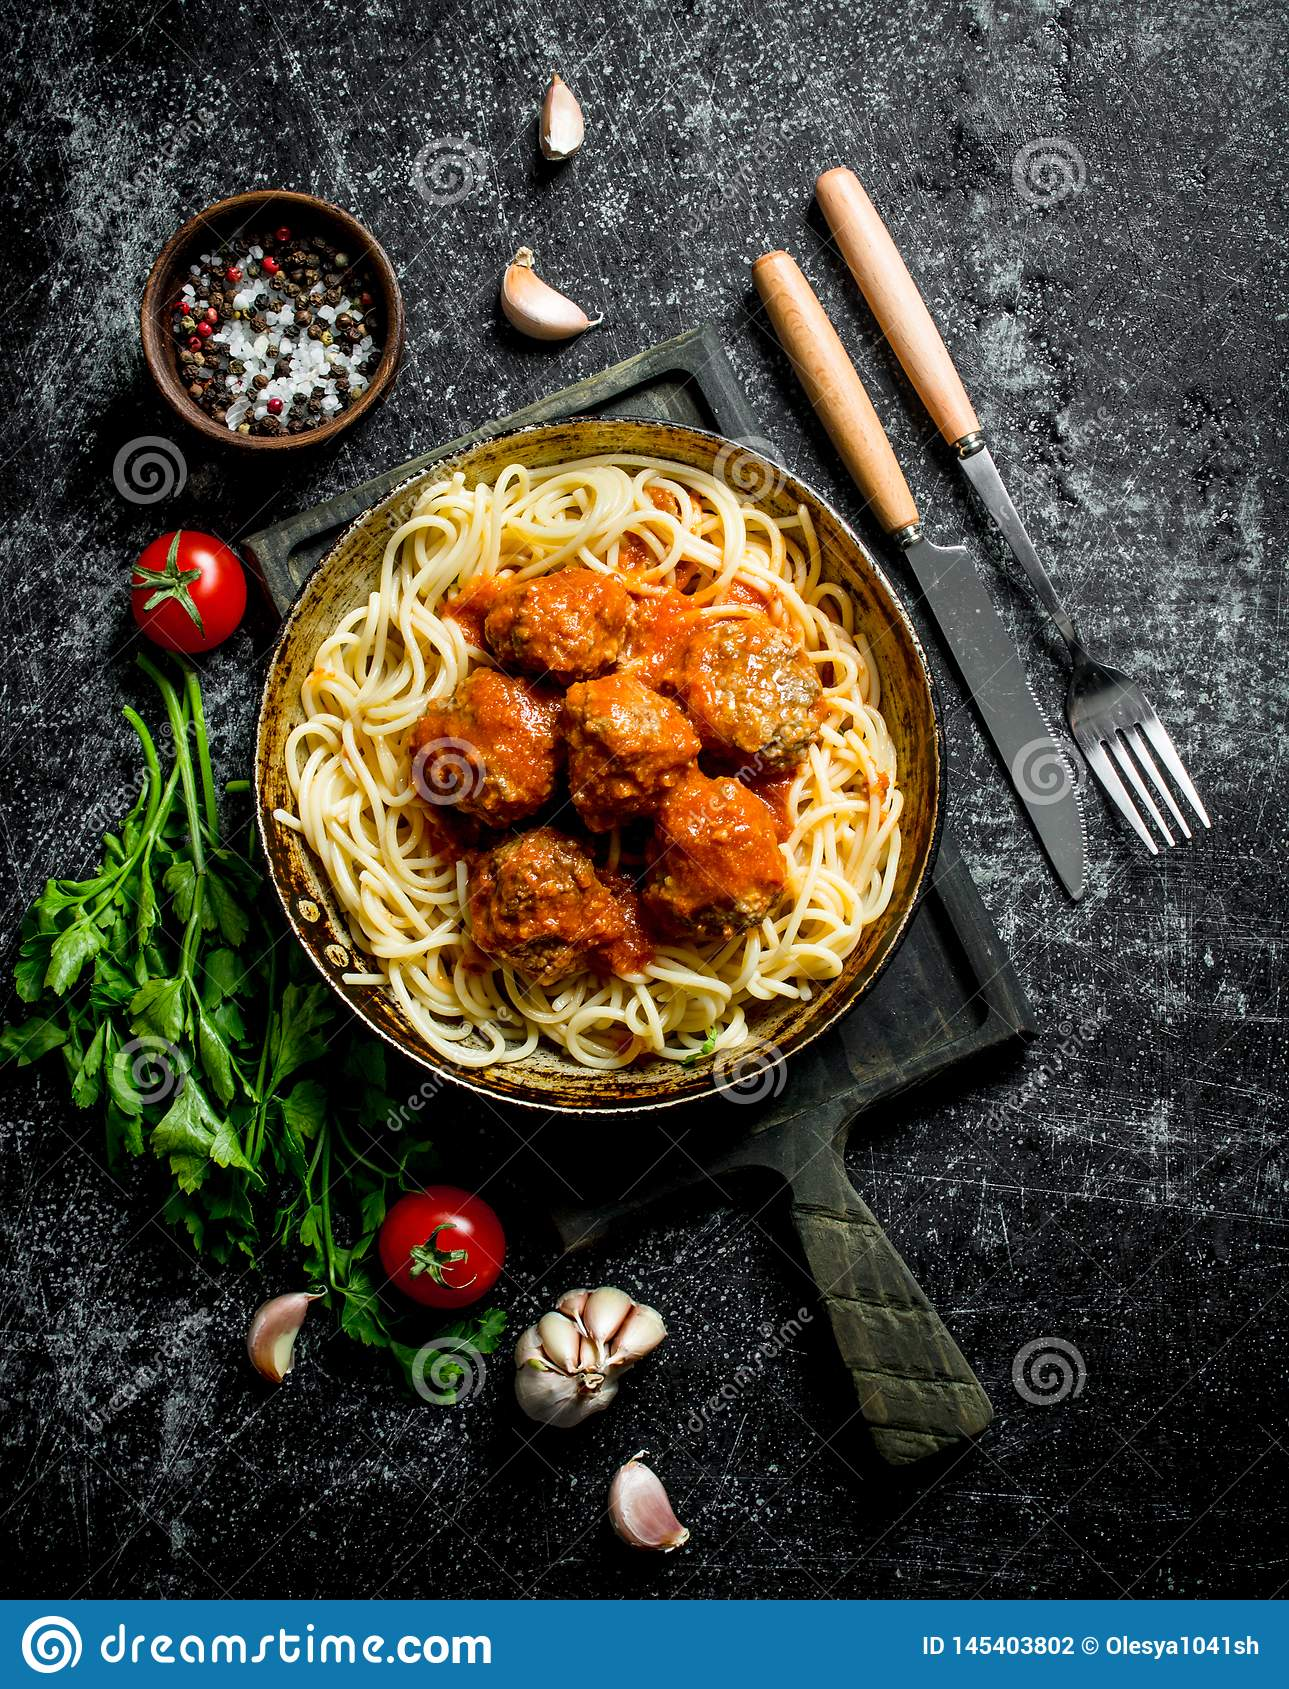 Spaghetti and meat balls in pan with spices, herbs and tomatoes